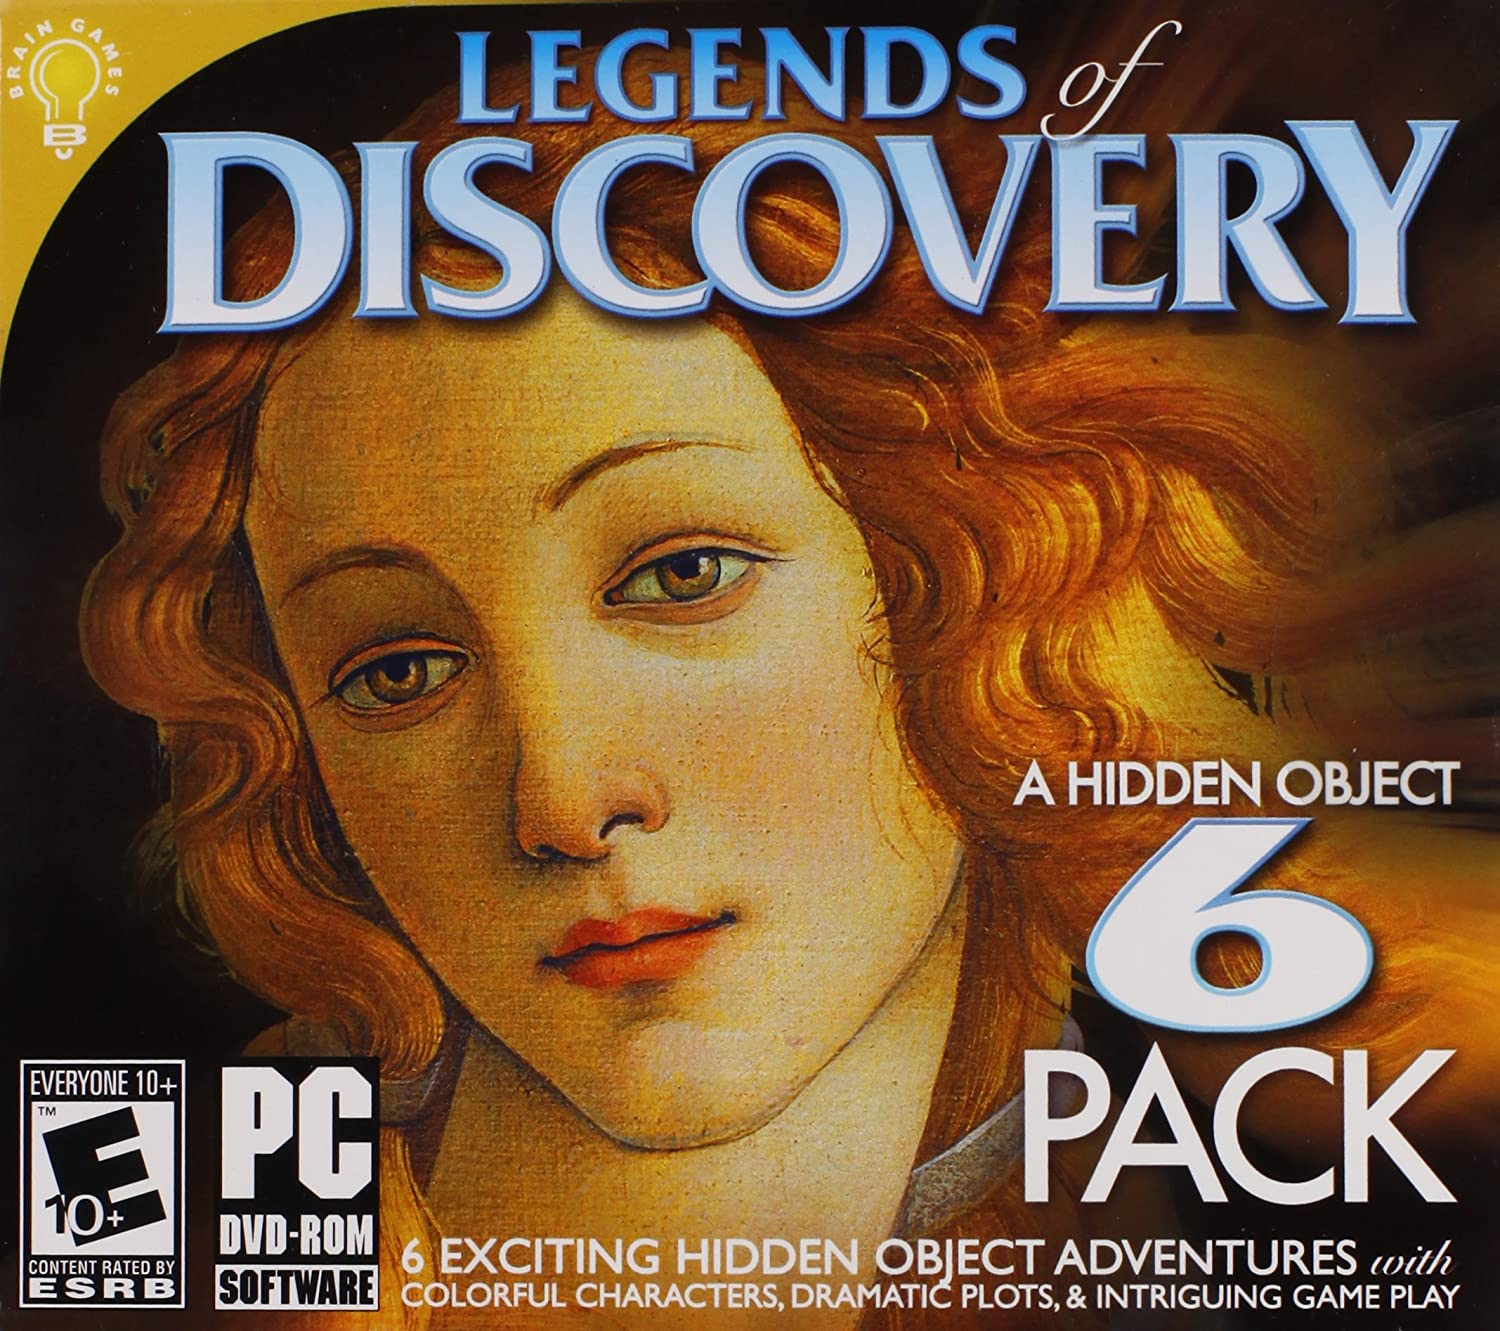 Legends of Discovery (6 Pack)